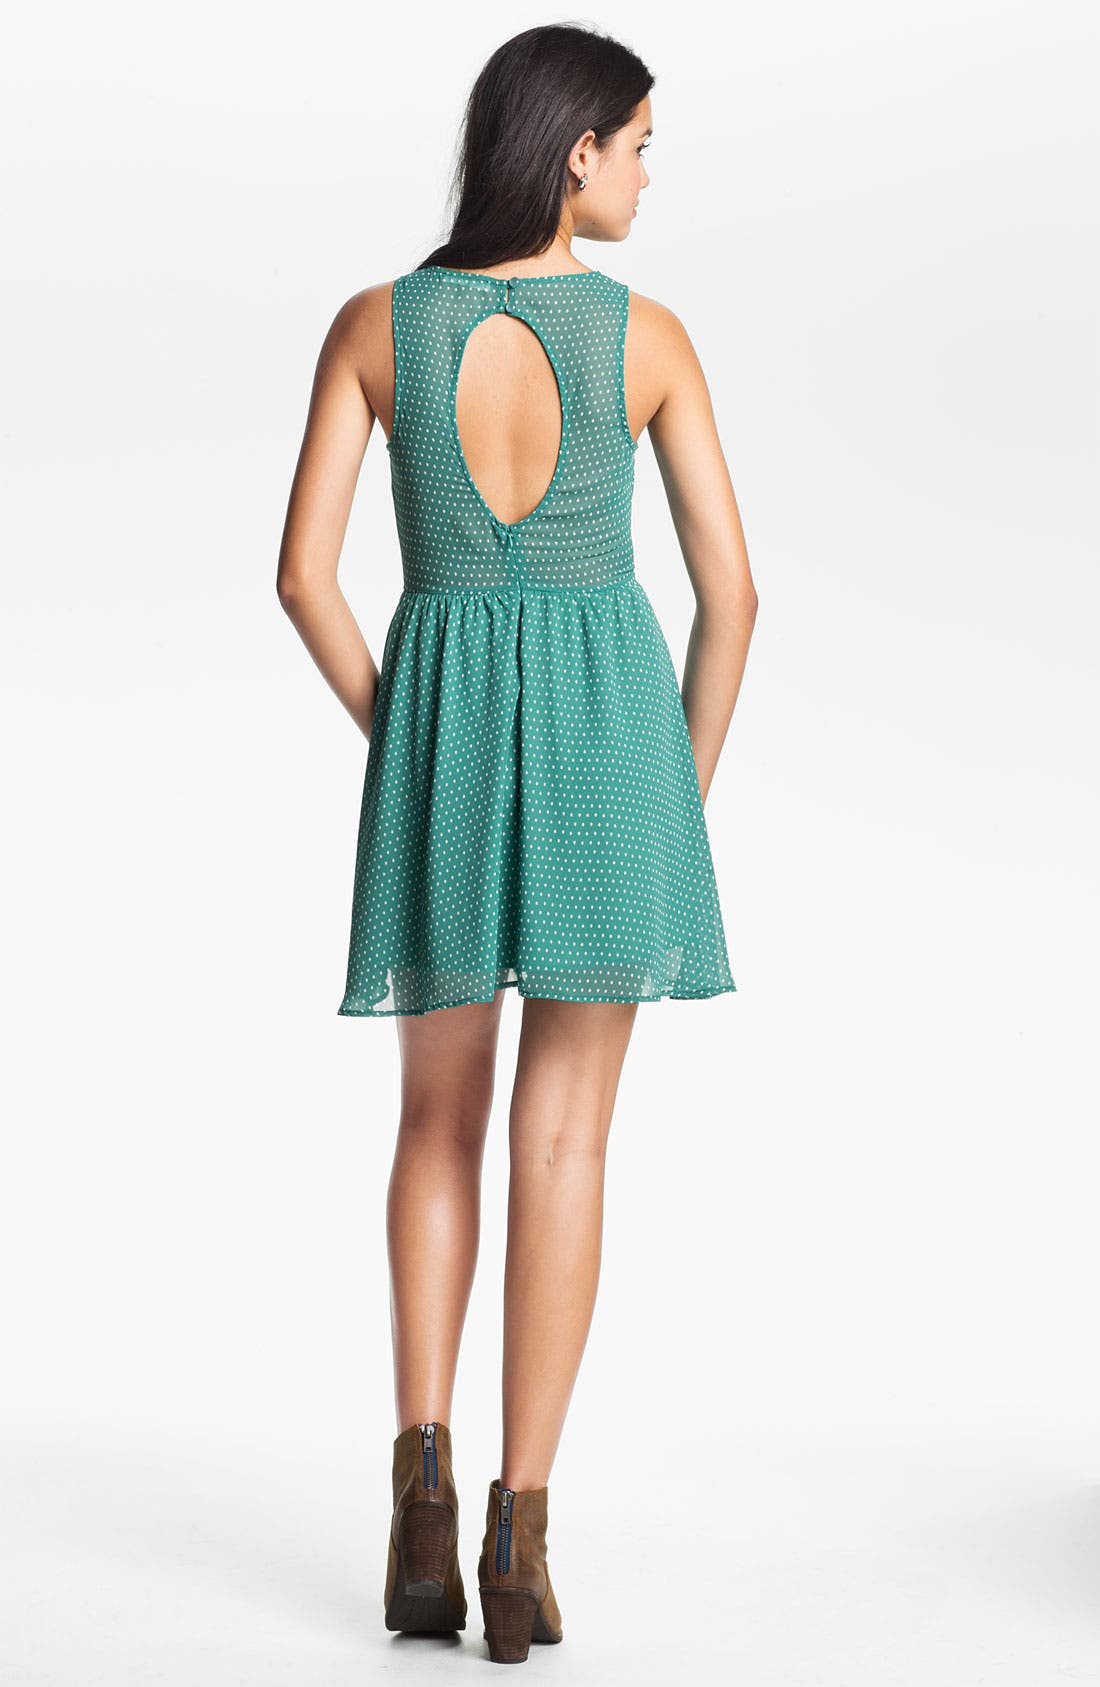 Alternate Image 1 Selected - Lush Cutout Back Skater Dress (Juniors)